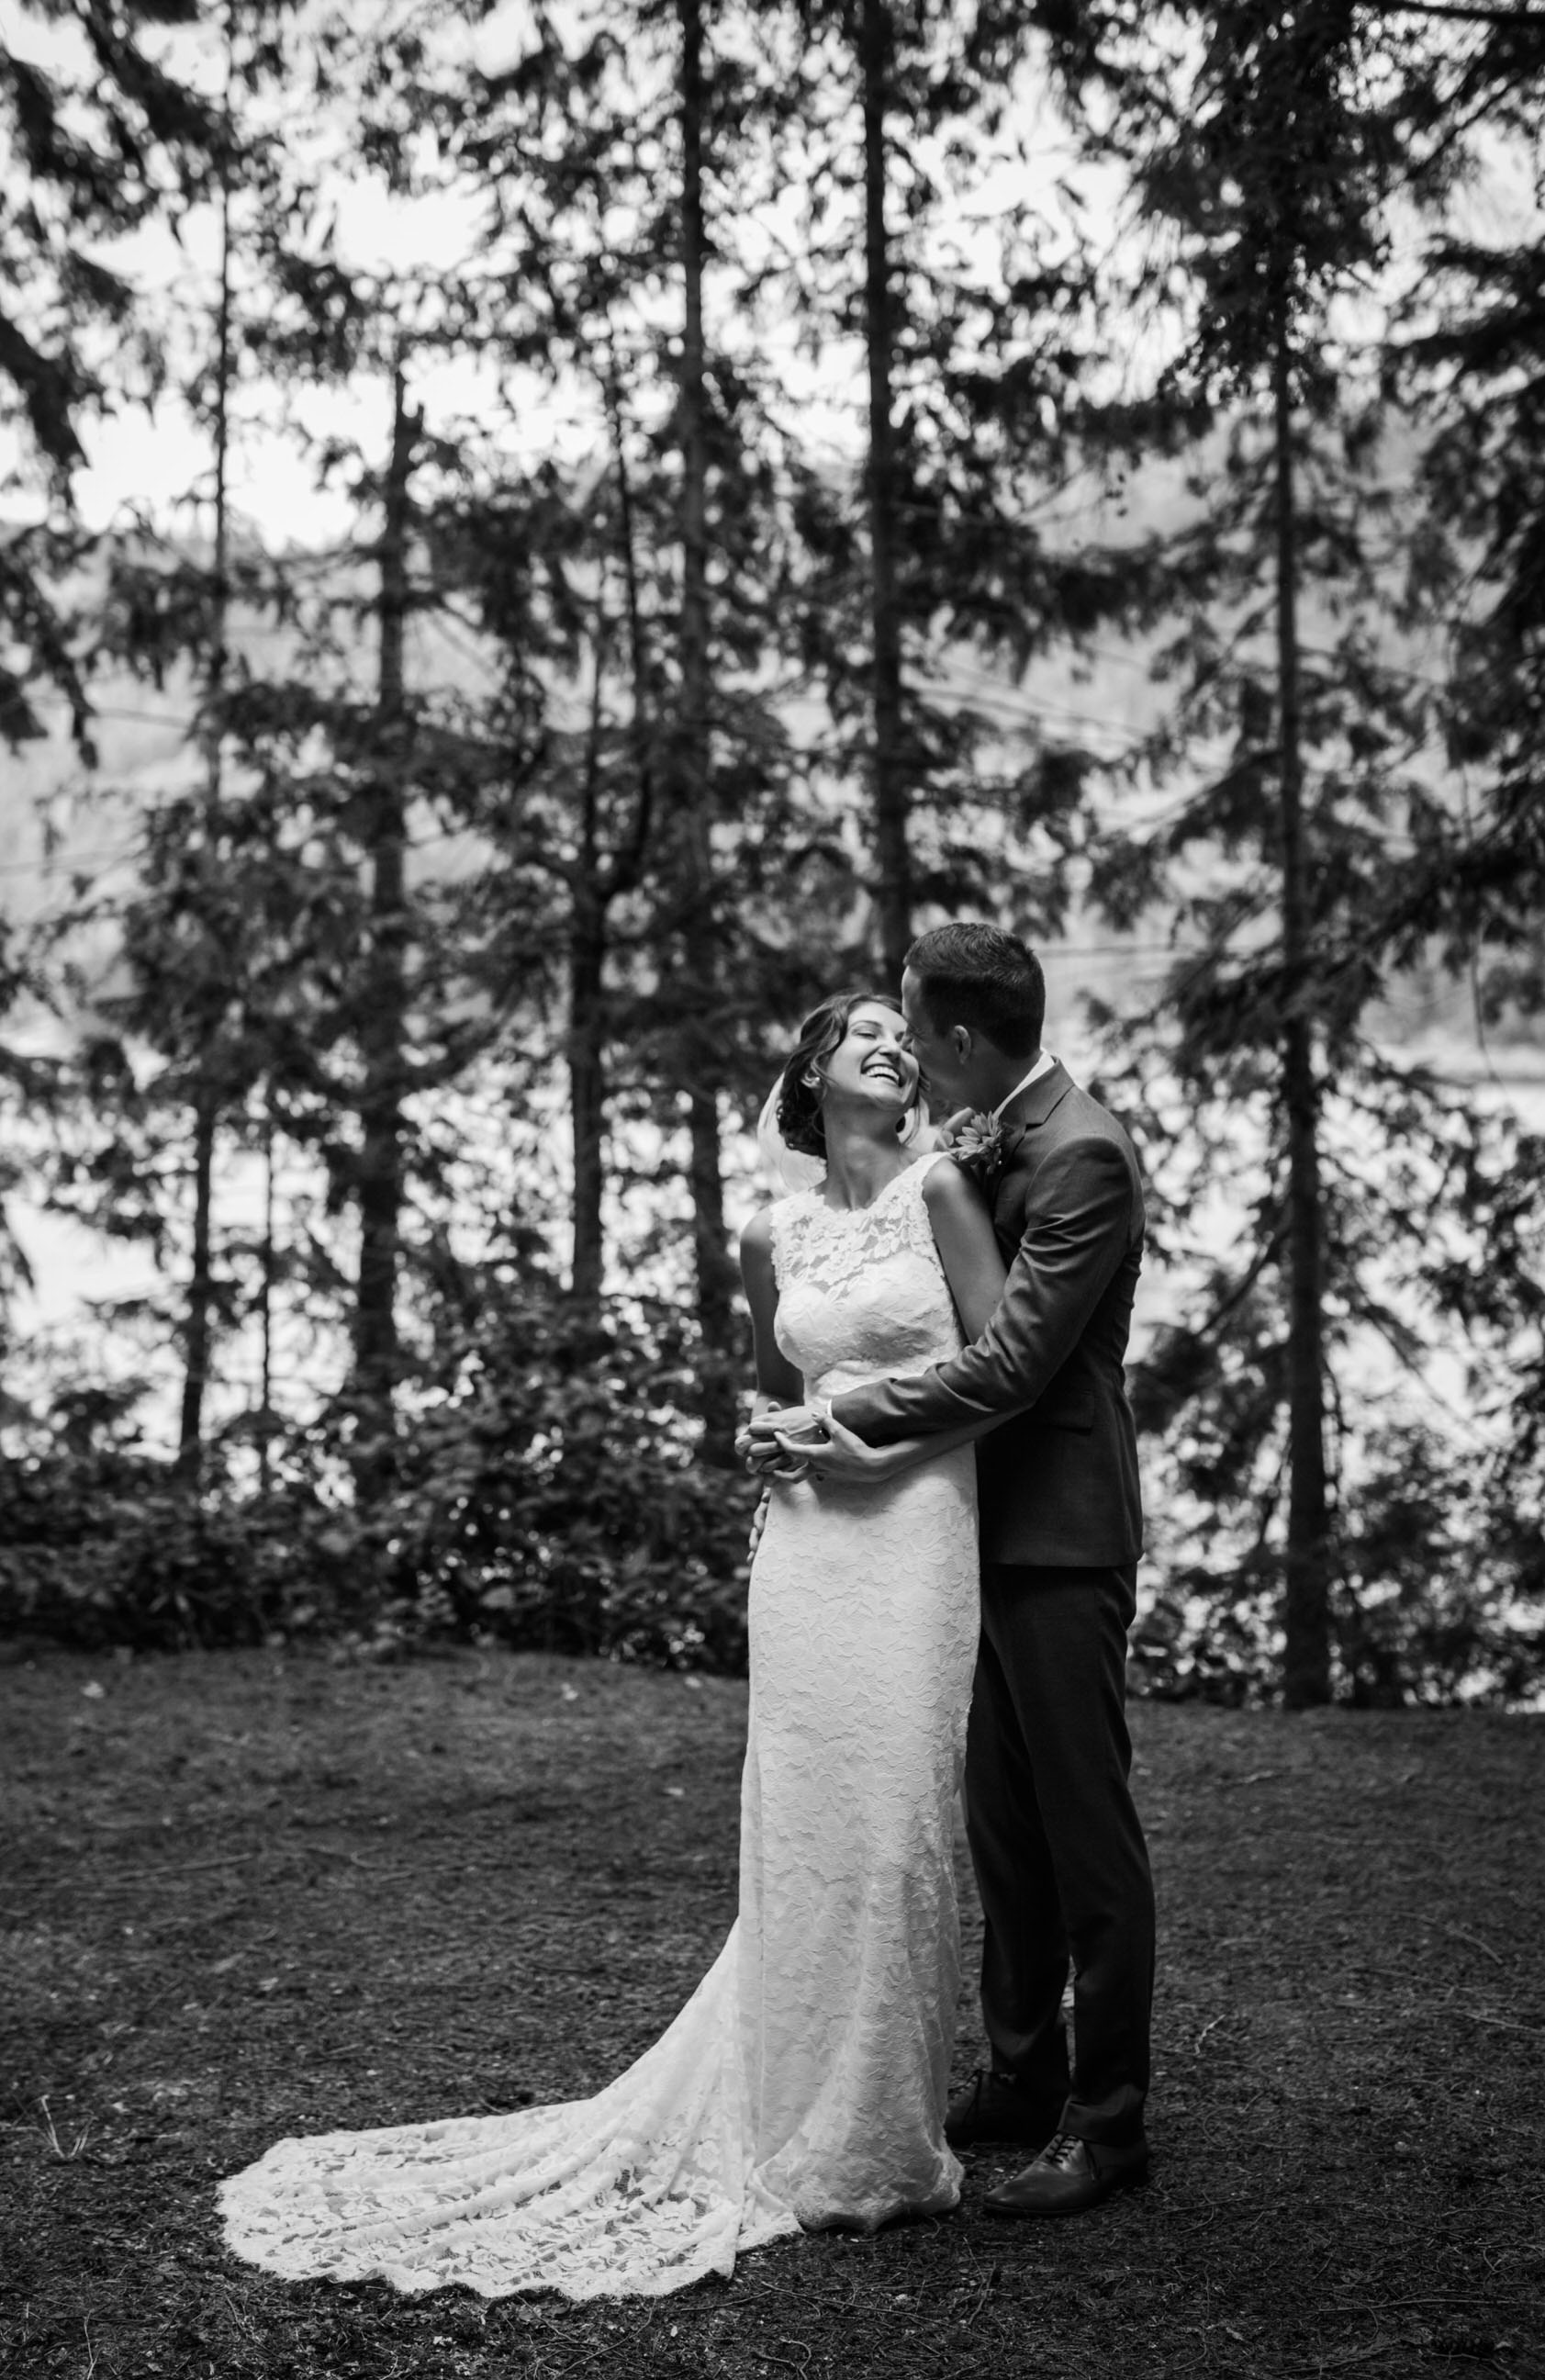 West Coast Wilderness Lodge Wedding Photos - Vancouver Wedding Photographer & Videographer - Sunshine Coast Wedding Photos - Sunshine Coast Wedding Photographer - Jennifer Picard Photography - IMG_9438_1.jpg